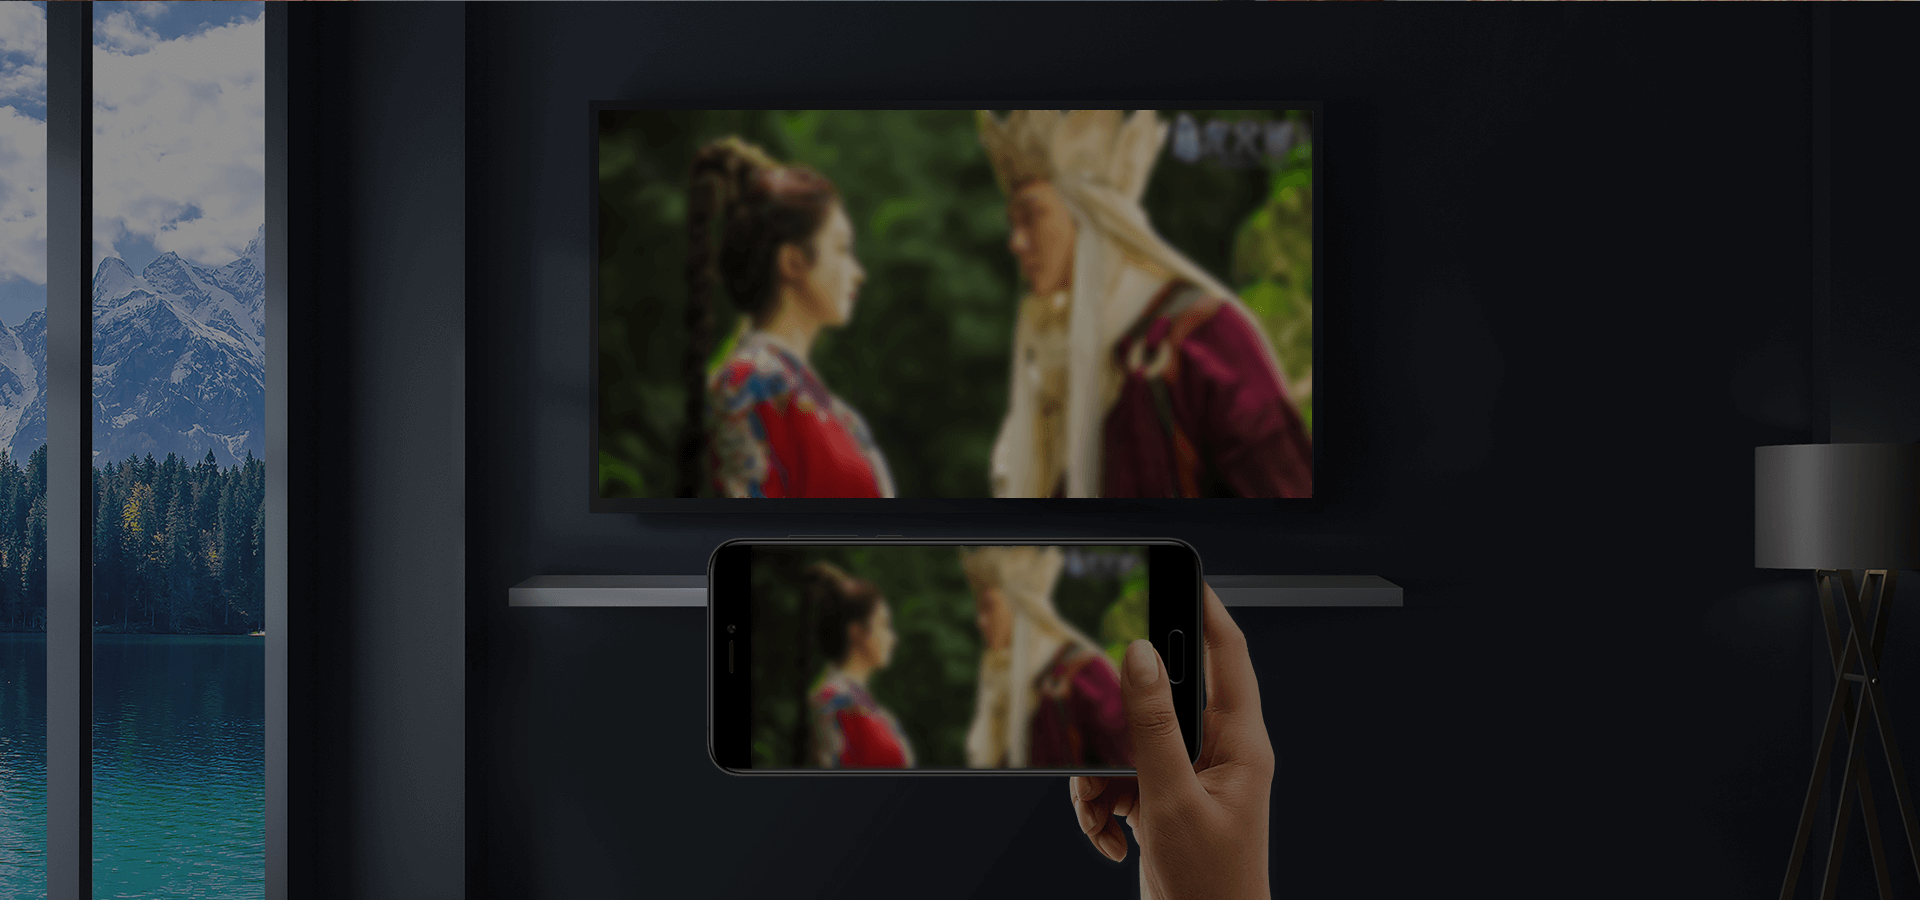 You don't need a TV VIP. Mobile phone VIPs can cast their phone content to their TVs. With one click, you can cast and watch your content on a big screen.